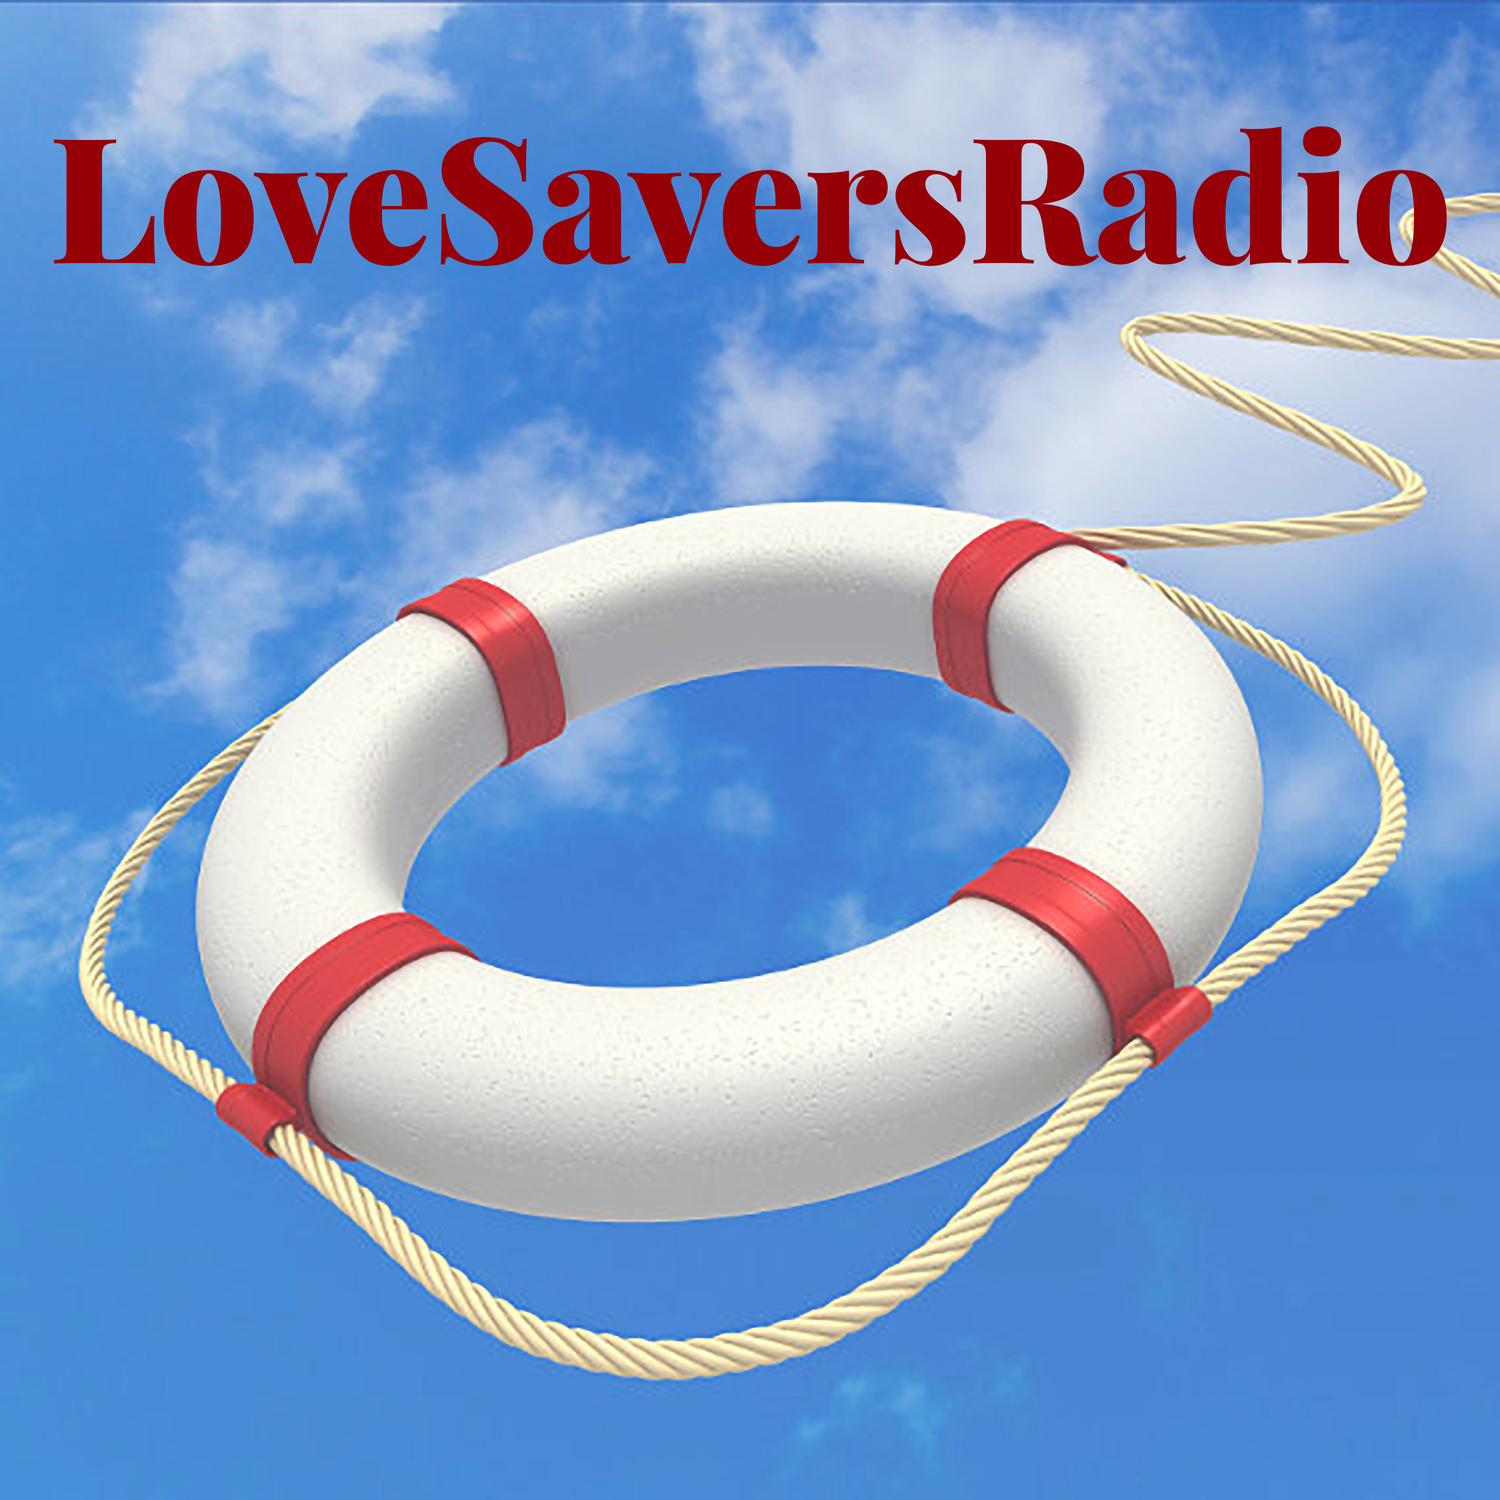 Lovesavers Radio Podcast - Lovesavers Ministry